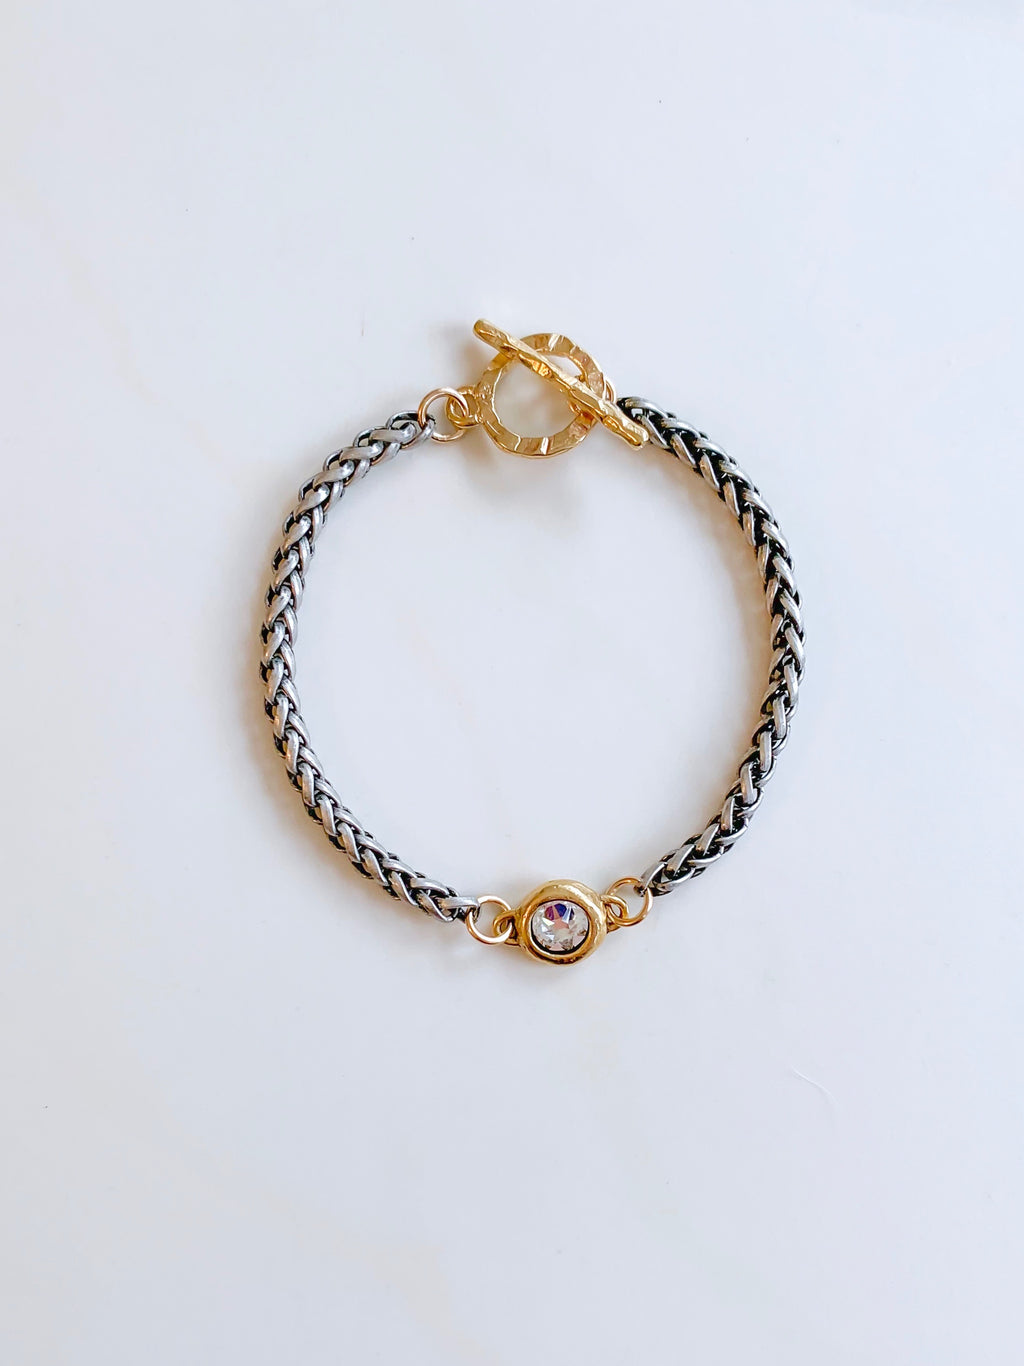 Harmony Gold and Black Bracelet